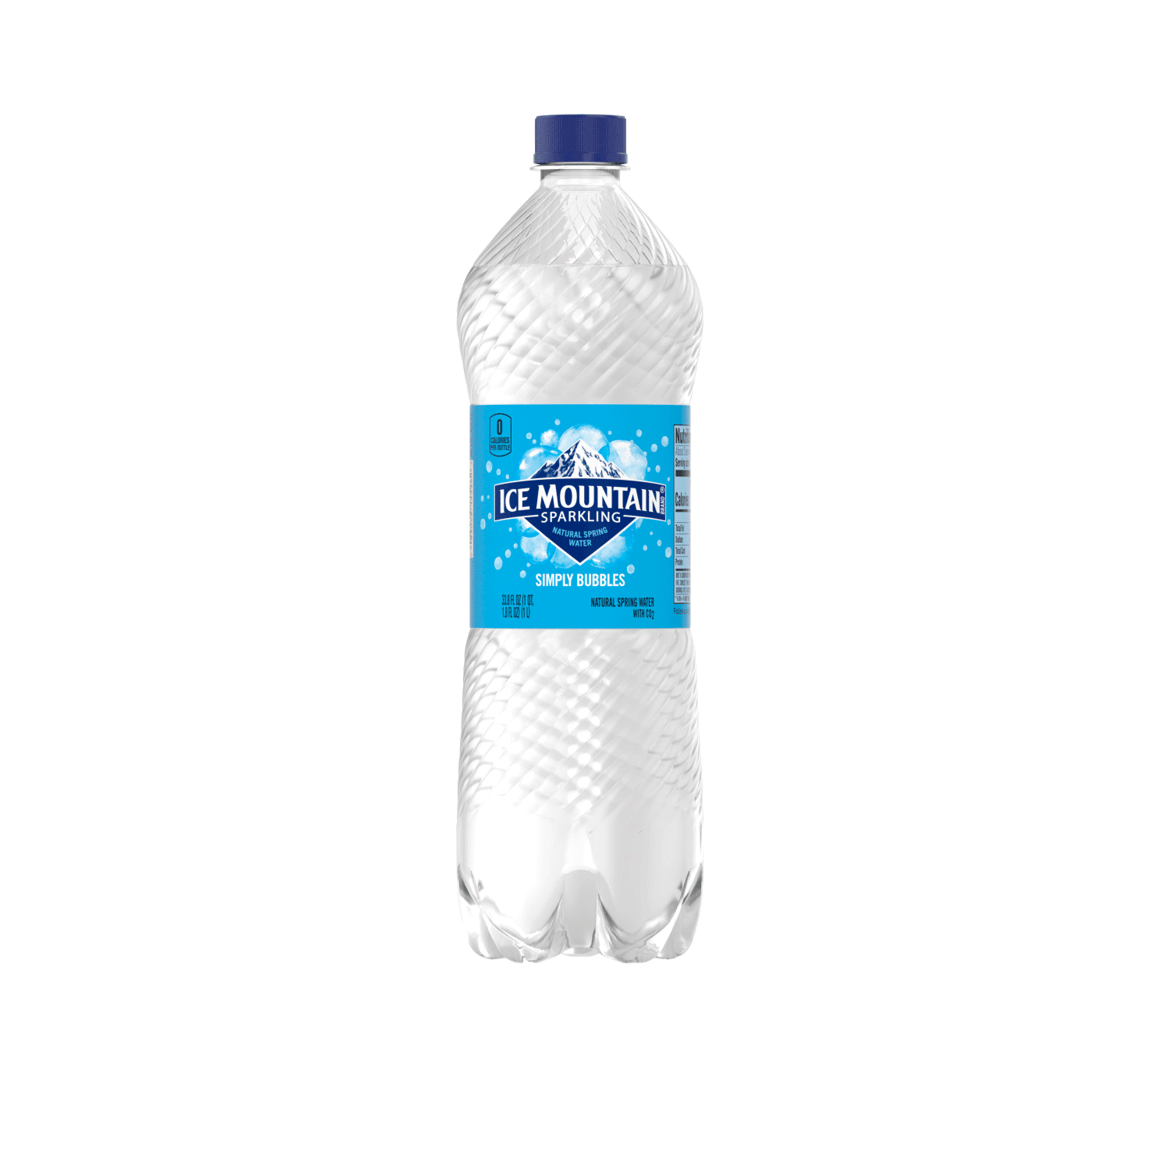 Ice Mountain® Brand Sparkling 100% Natural Spring Water - Simply Bubbles Image2